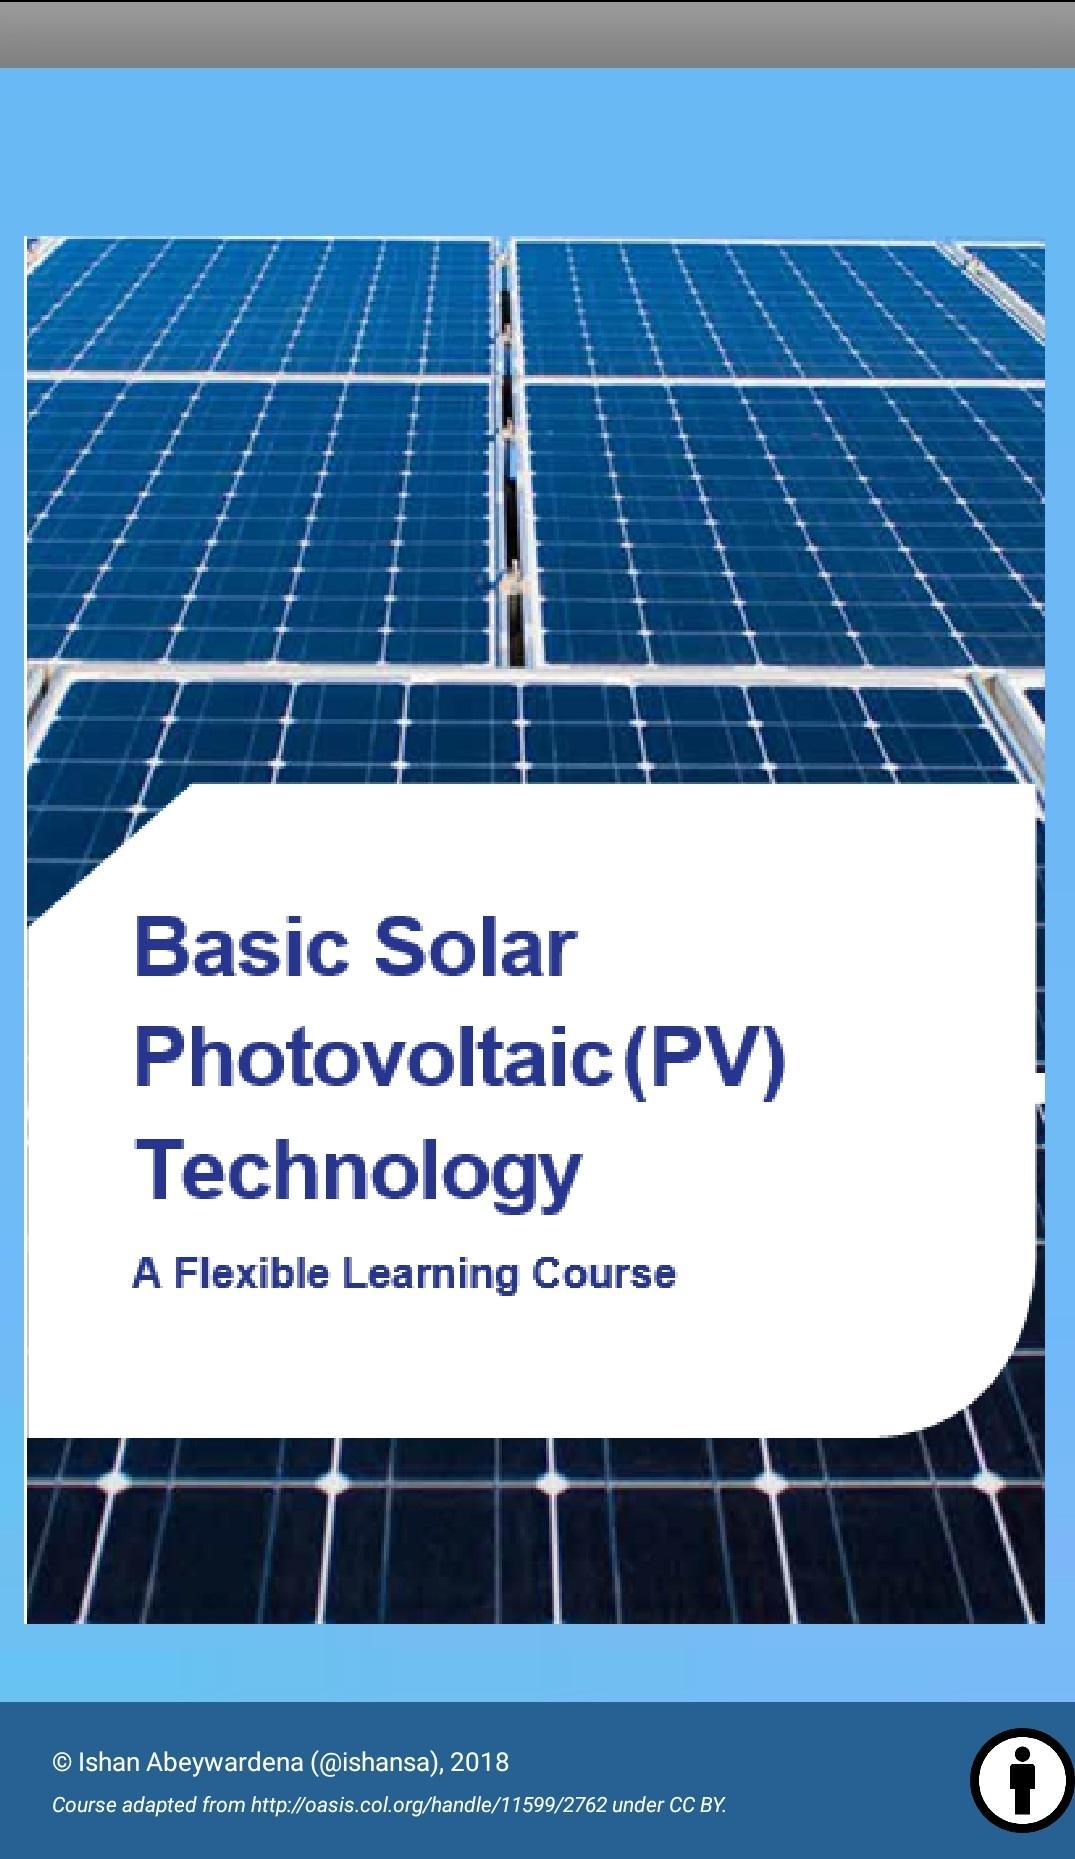 Solar PV Technology Mobile Course for Android - APK Download